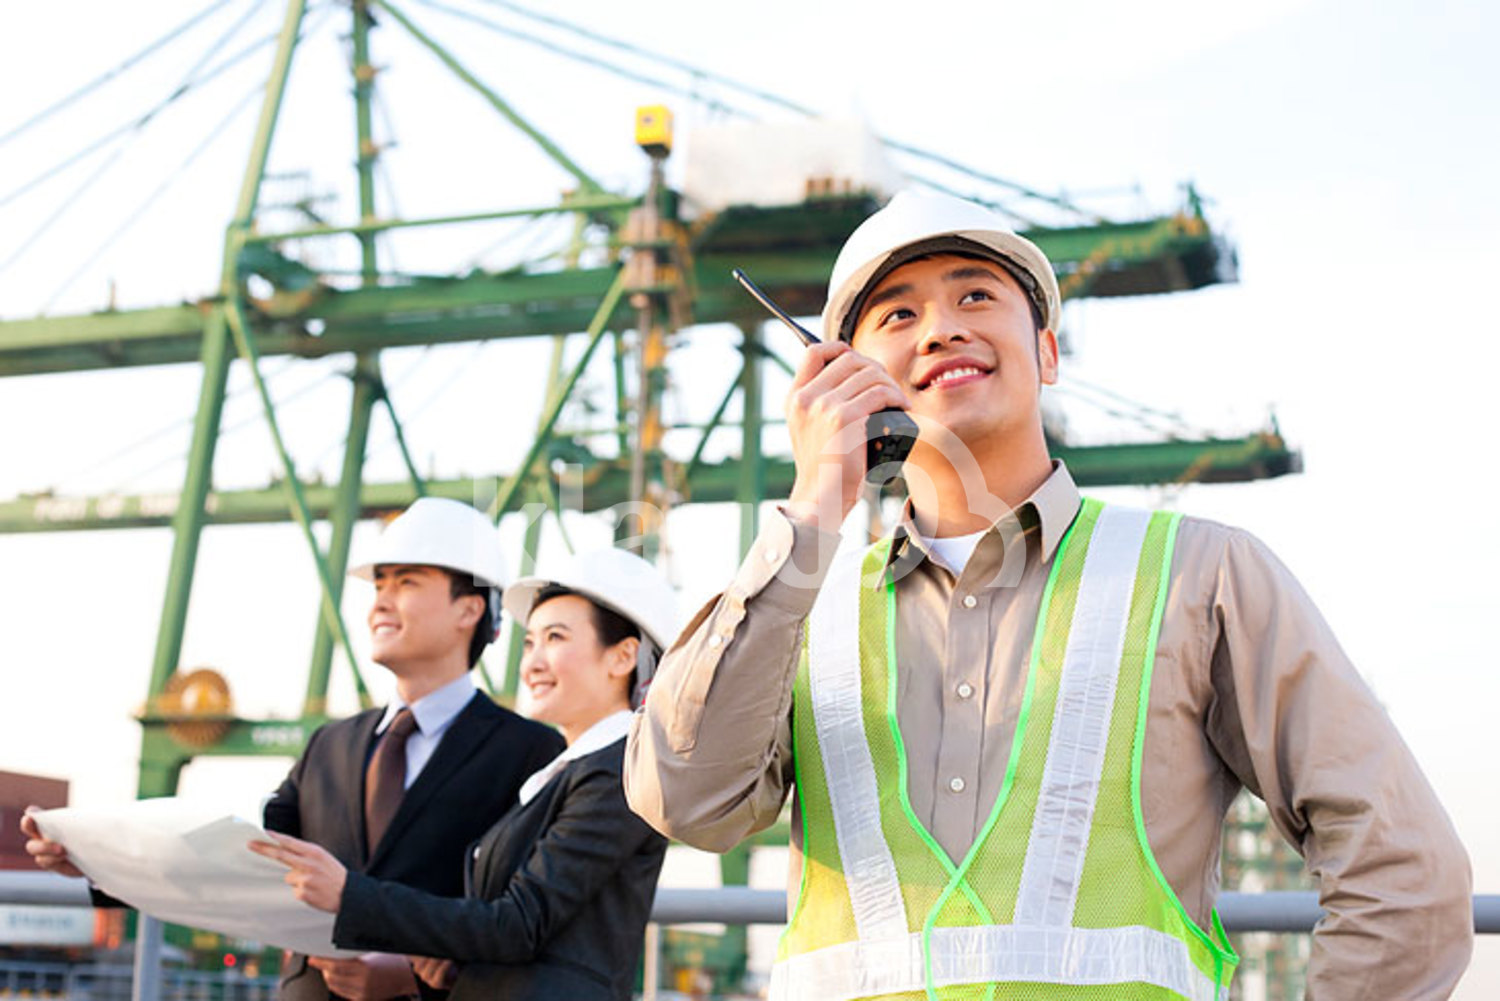 Chinese shipping industry worker using a walkie-talkie with businesspeople looking over blueprints in the background